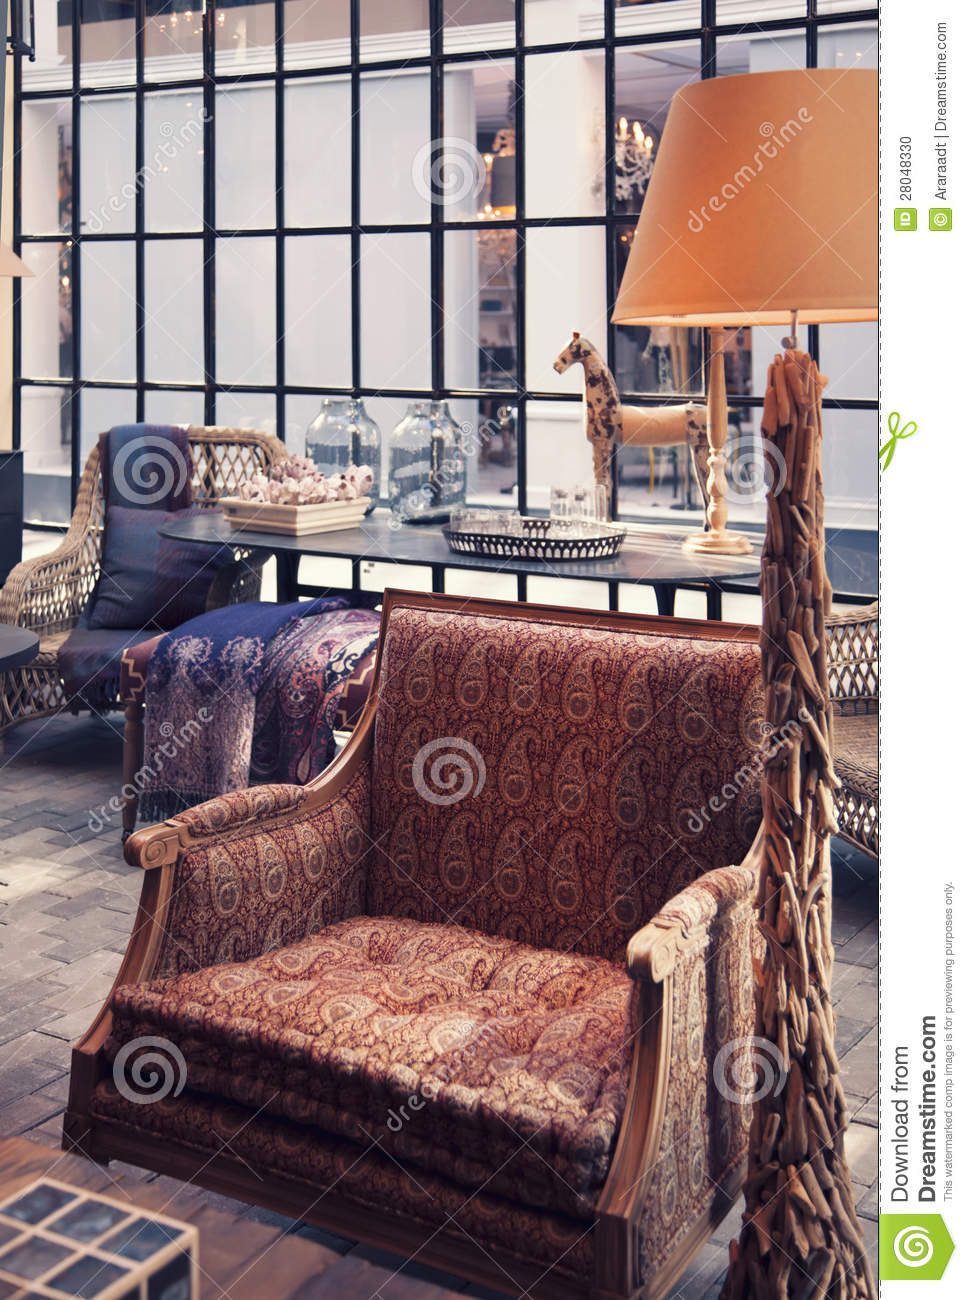 Interior with chair